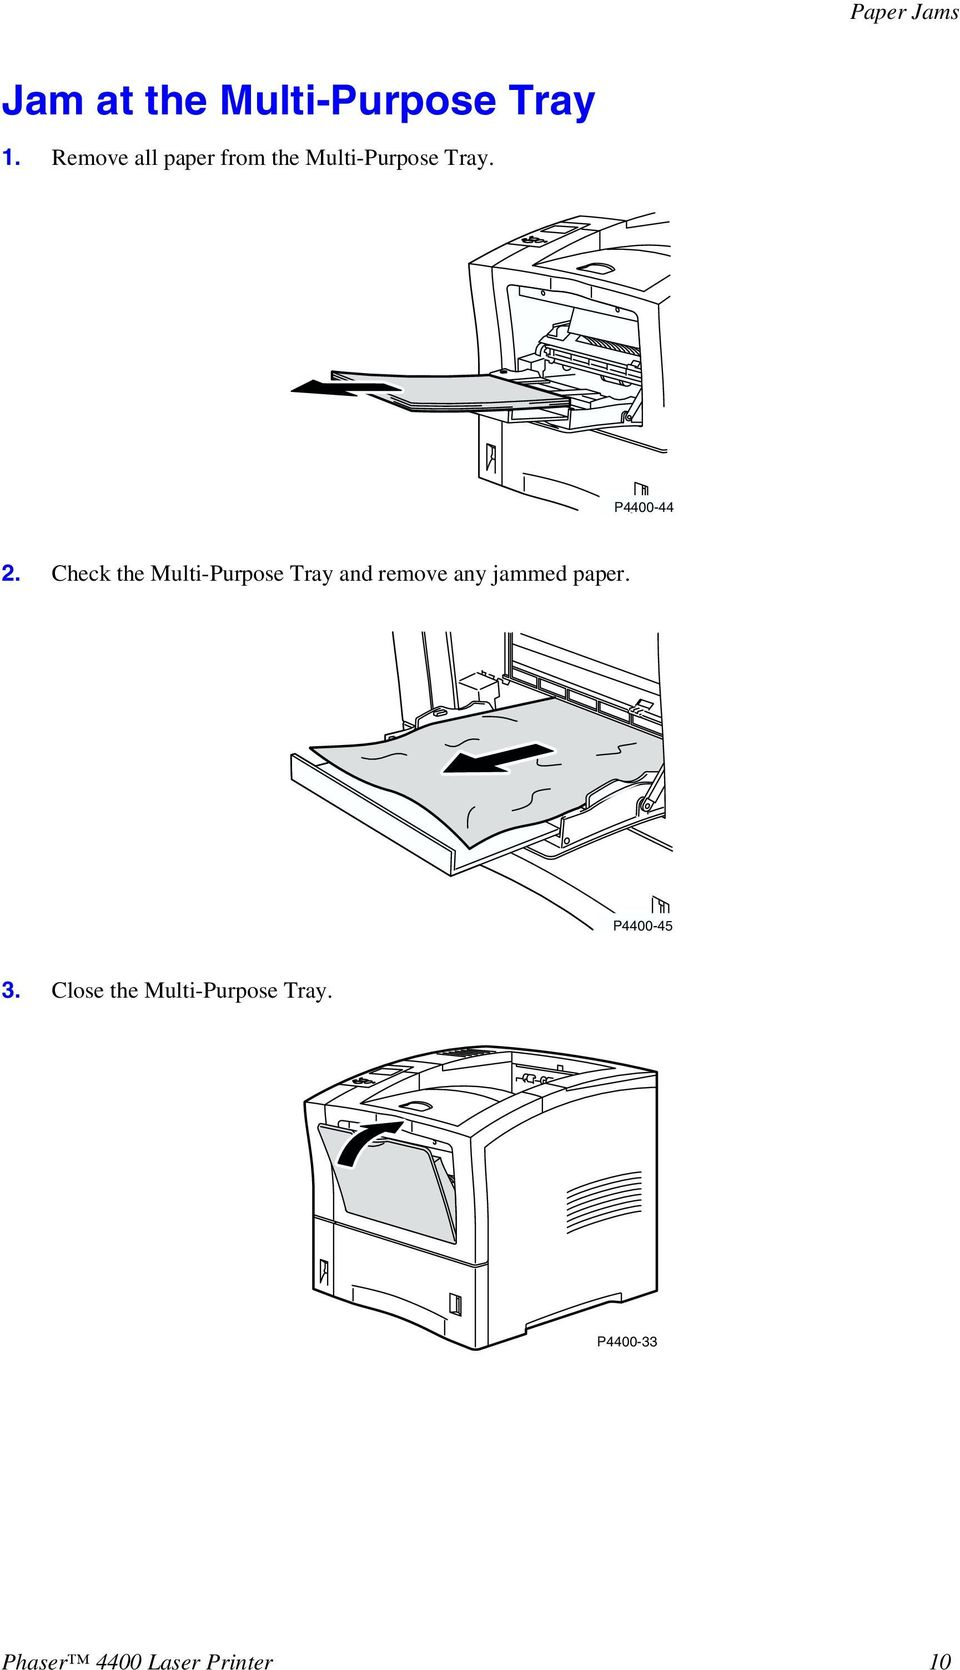 Check the Multi-Purpose Tray and remove any jammed paper.